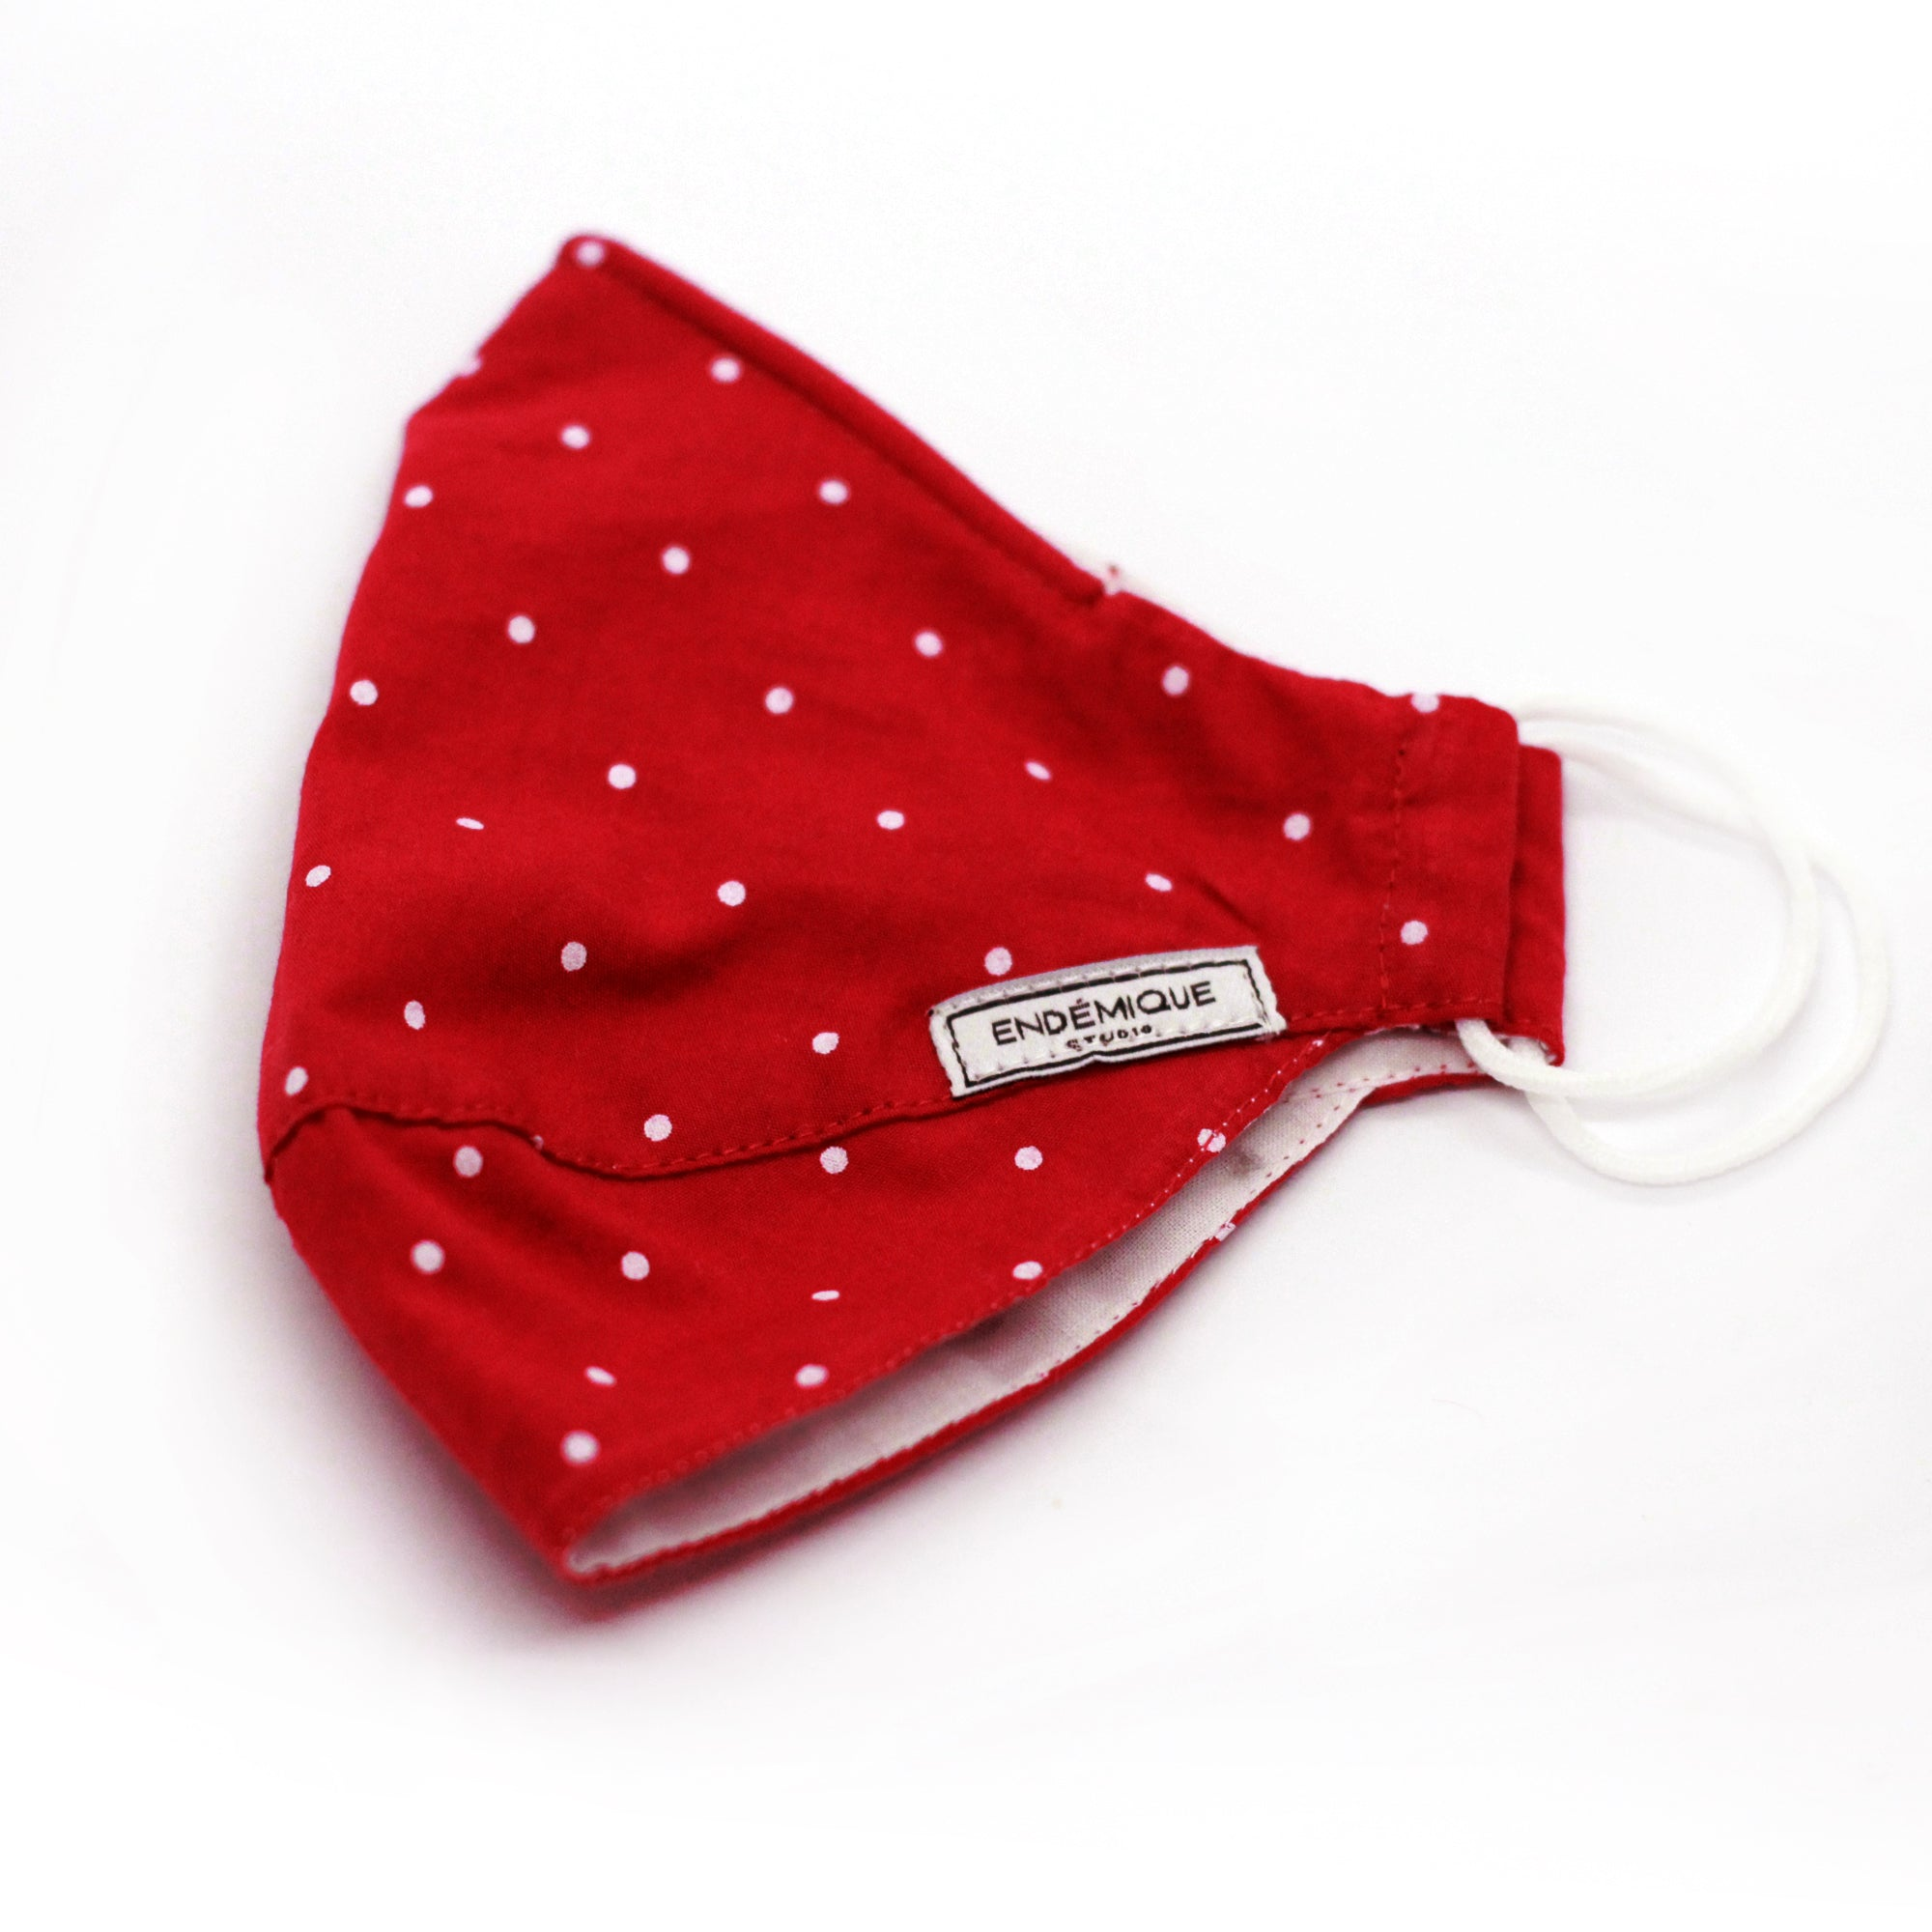 Picture of Endémique Studio Kids Mask Polka Dot Red-Yıkanabilir Yüz Maskesi 1-2-3 Yaş Çocuk